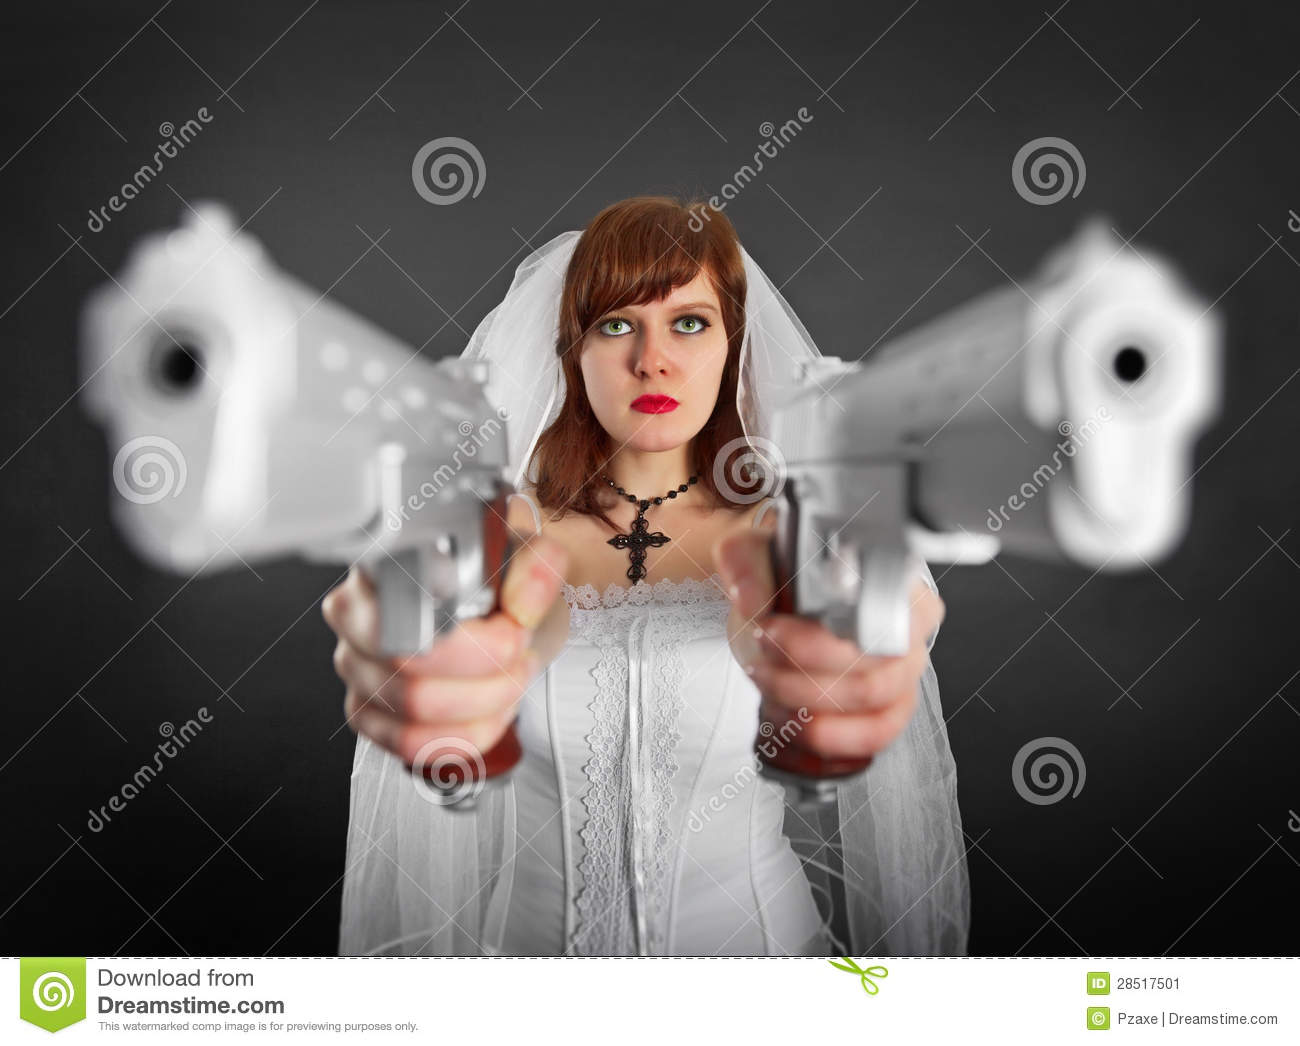 Beautiful Bride Armed With Two Pistols Stock Image - Image ...